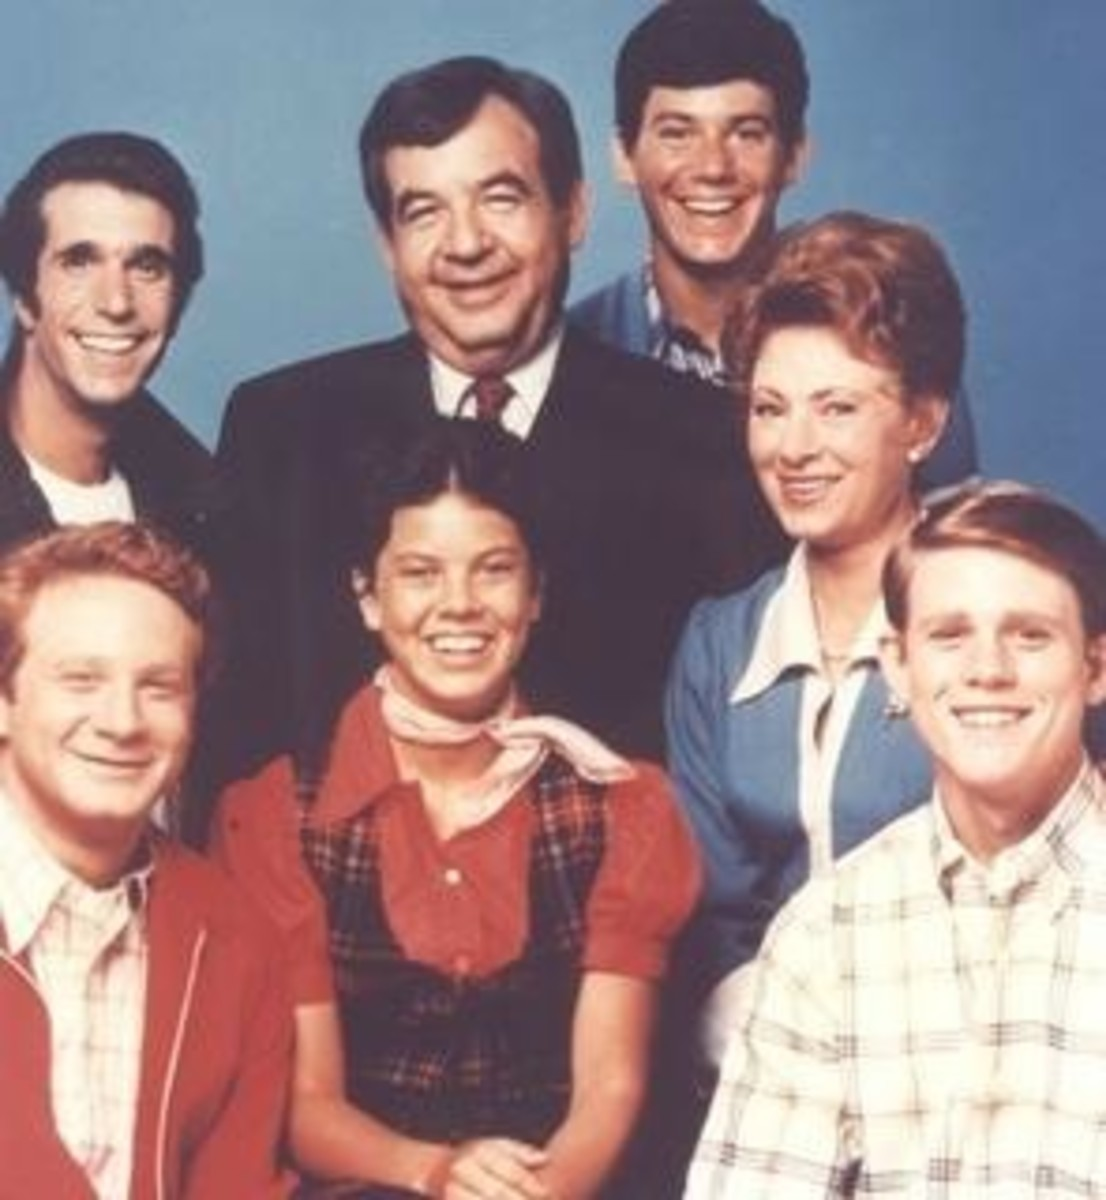 '70s TV - Catching up with the Cast of Happy Days